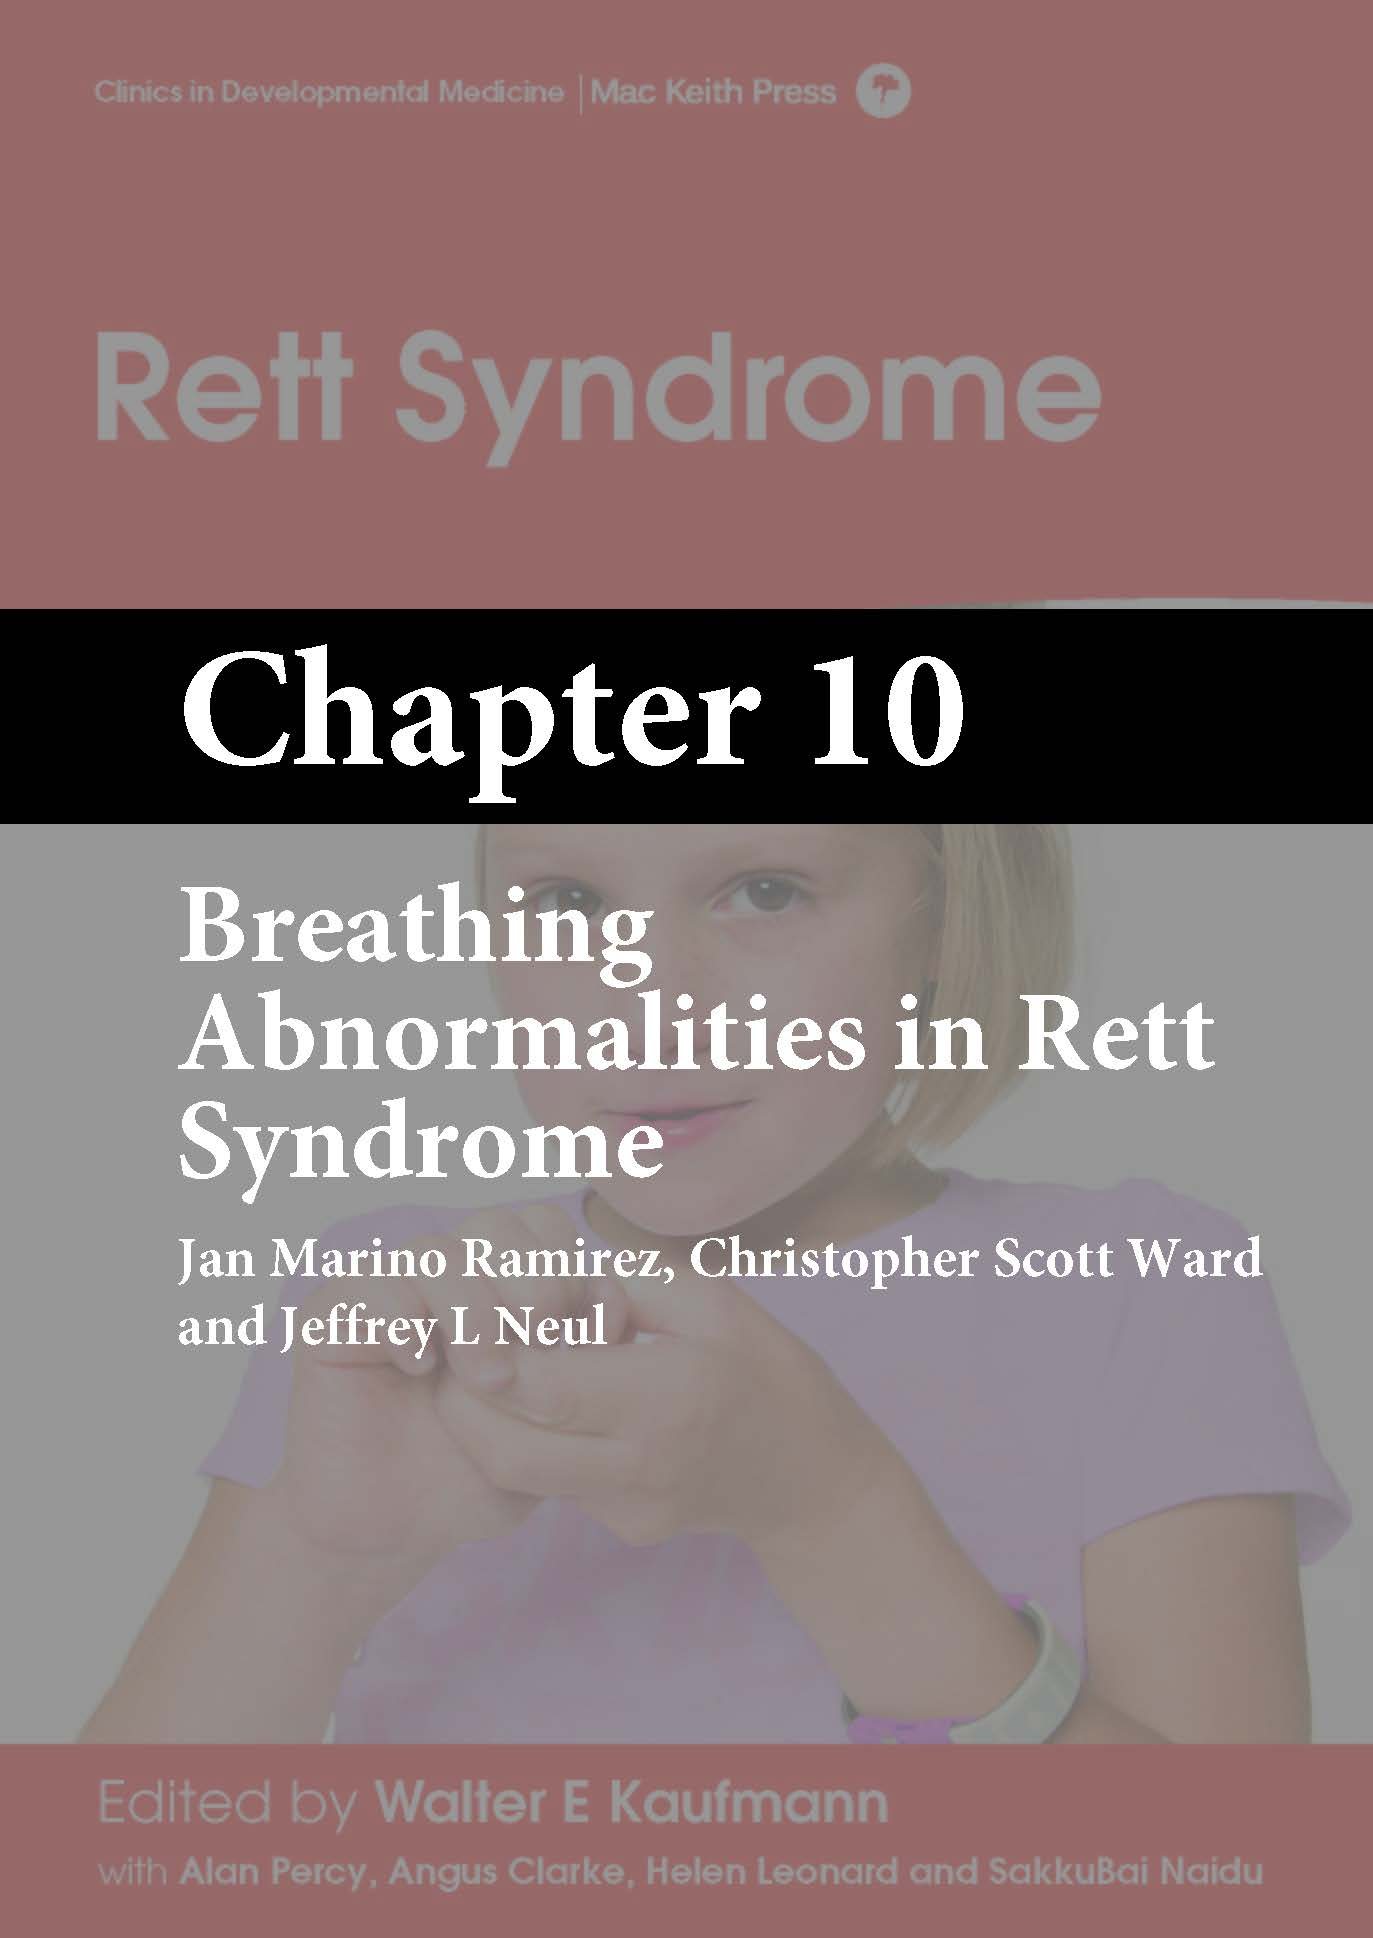 Rett Syndrome, Kaufmann, Chapter 10 cover